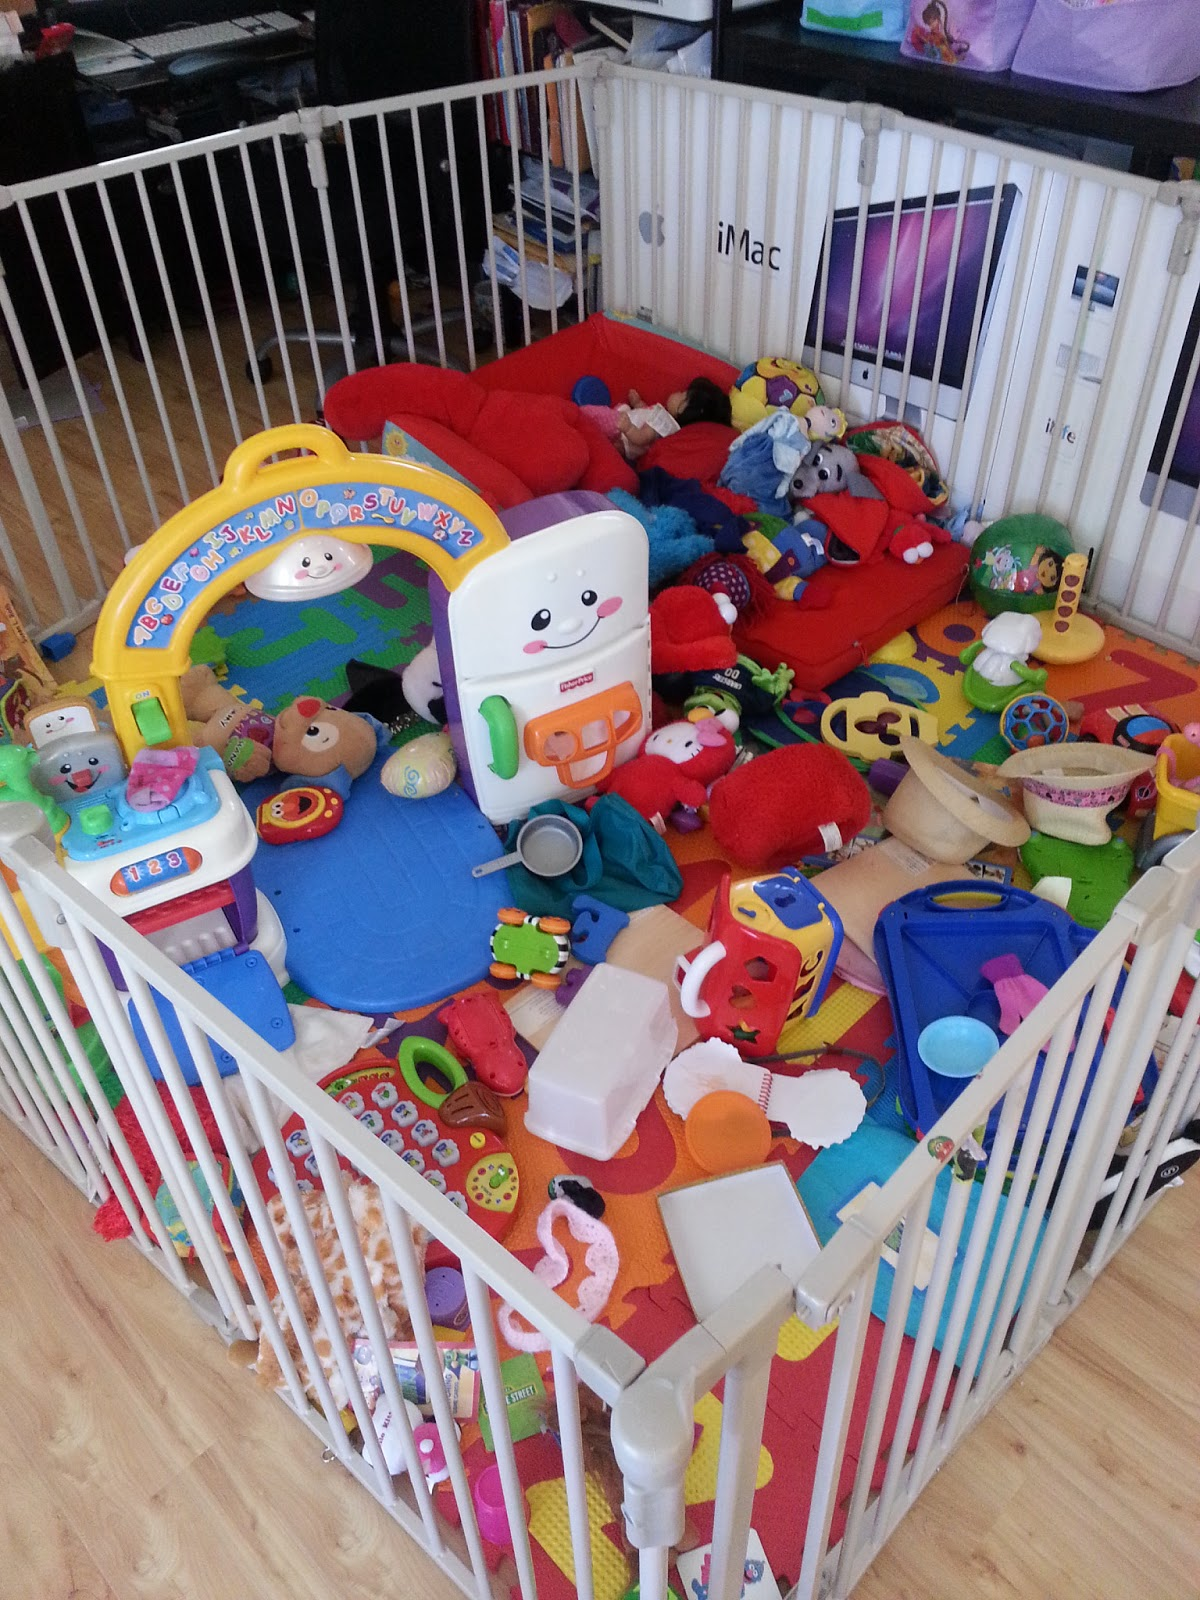 Kids mommyneurotic for Kids play area in living room ideas